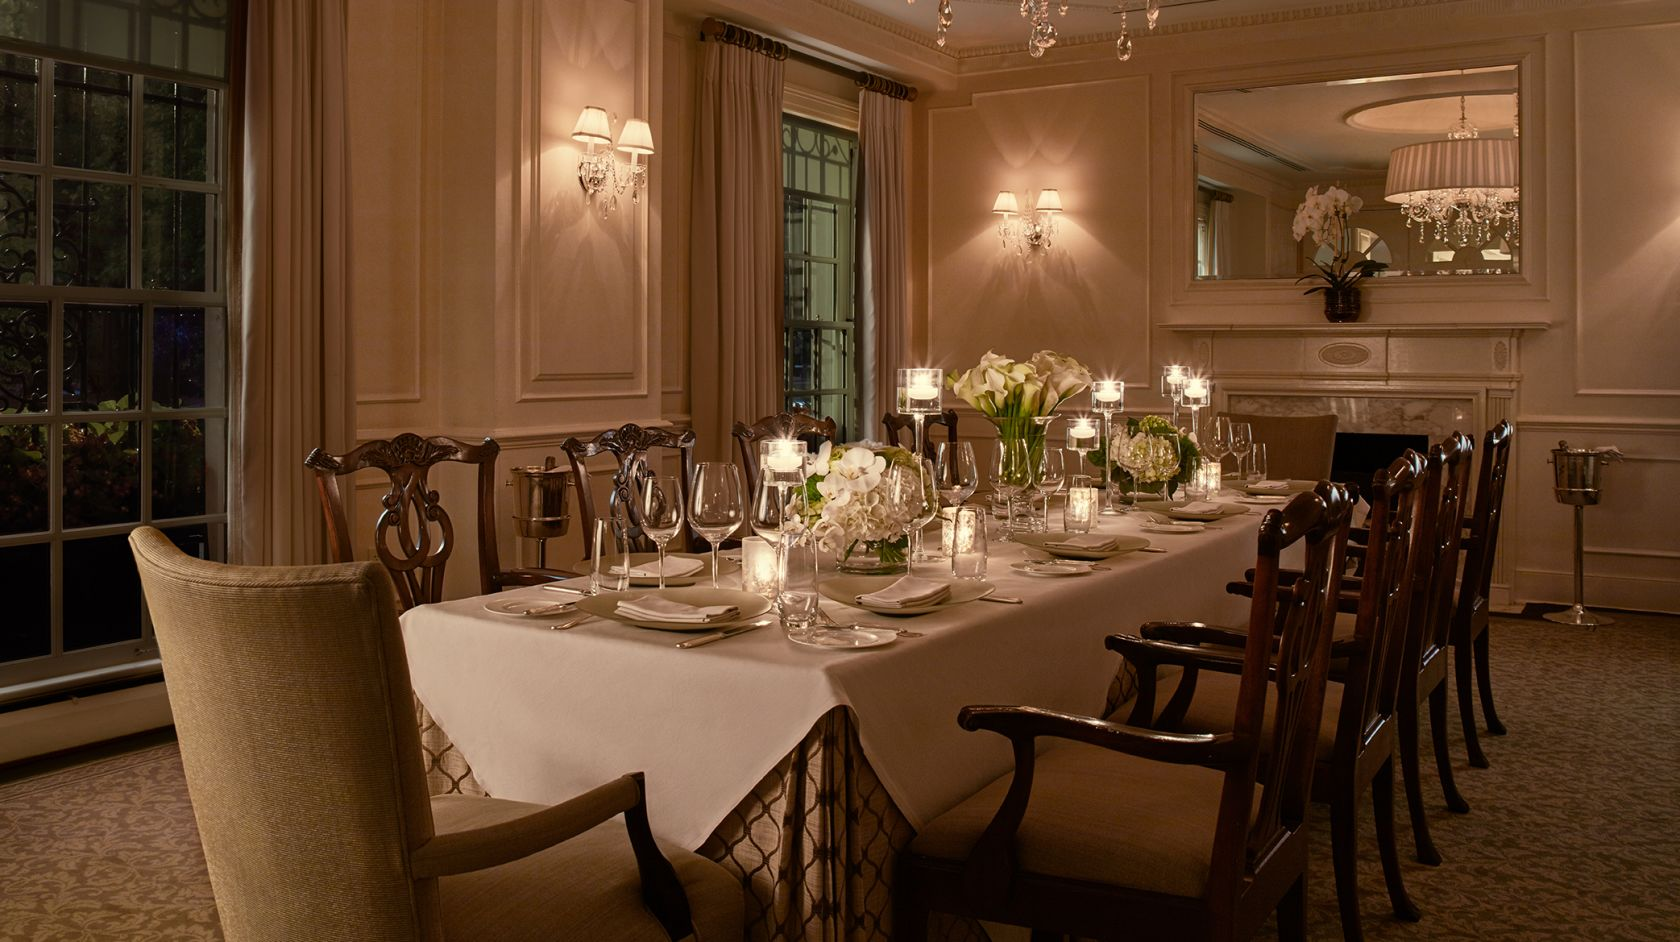 Private dining room table set for 10